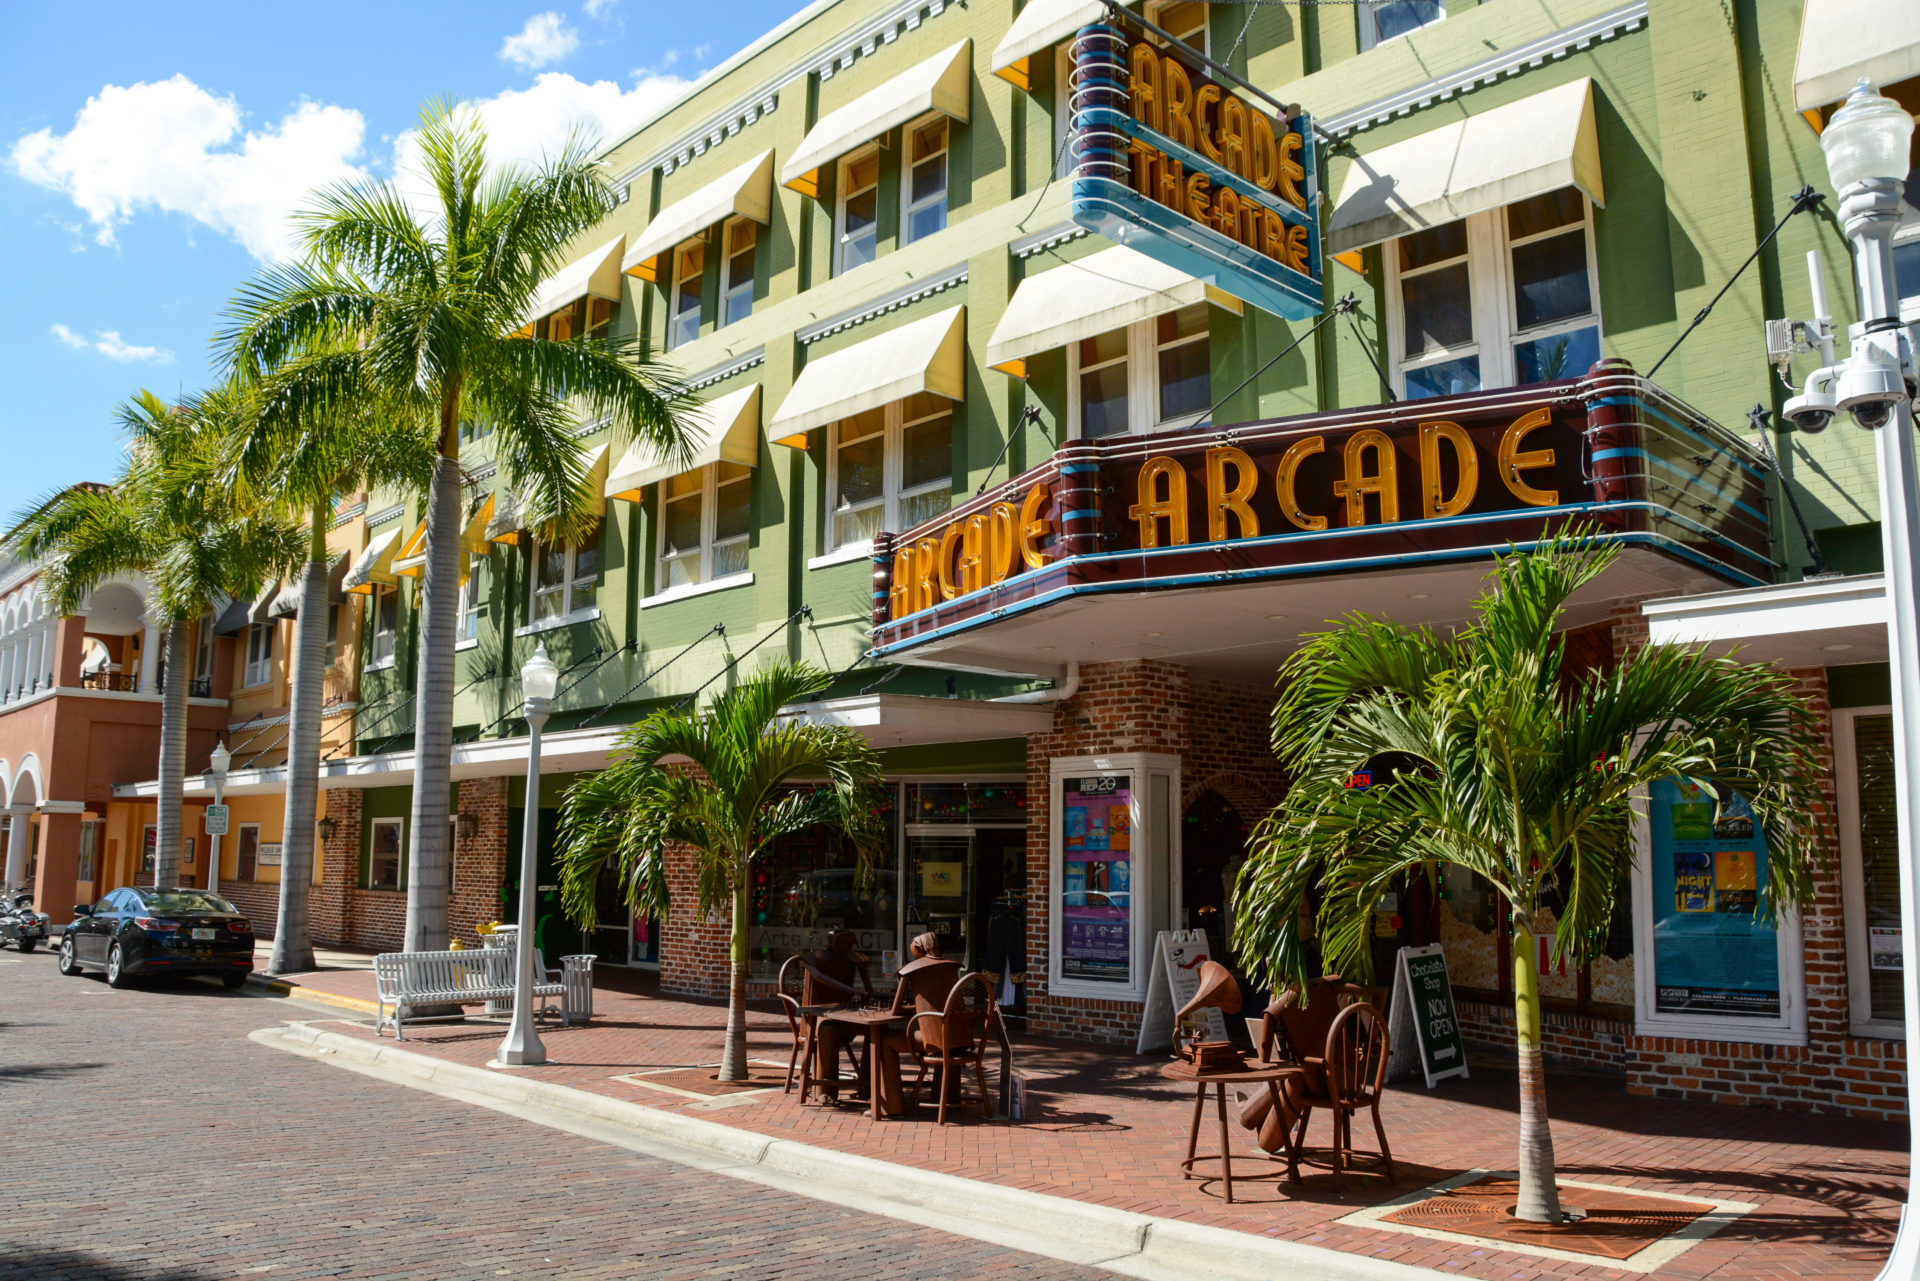 Downtown Fort Myers in Florida